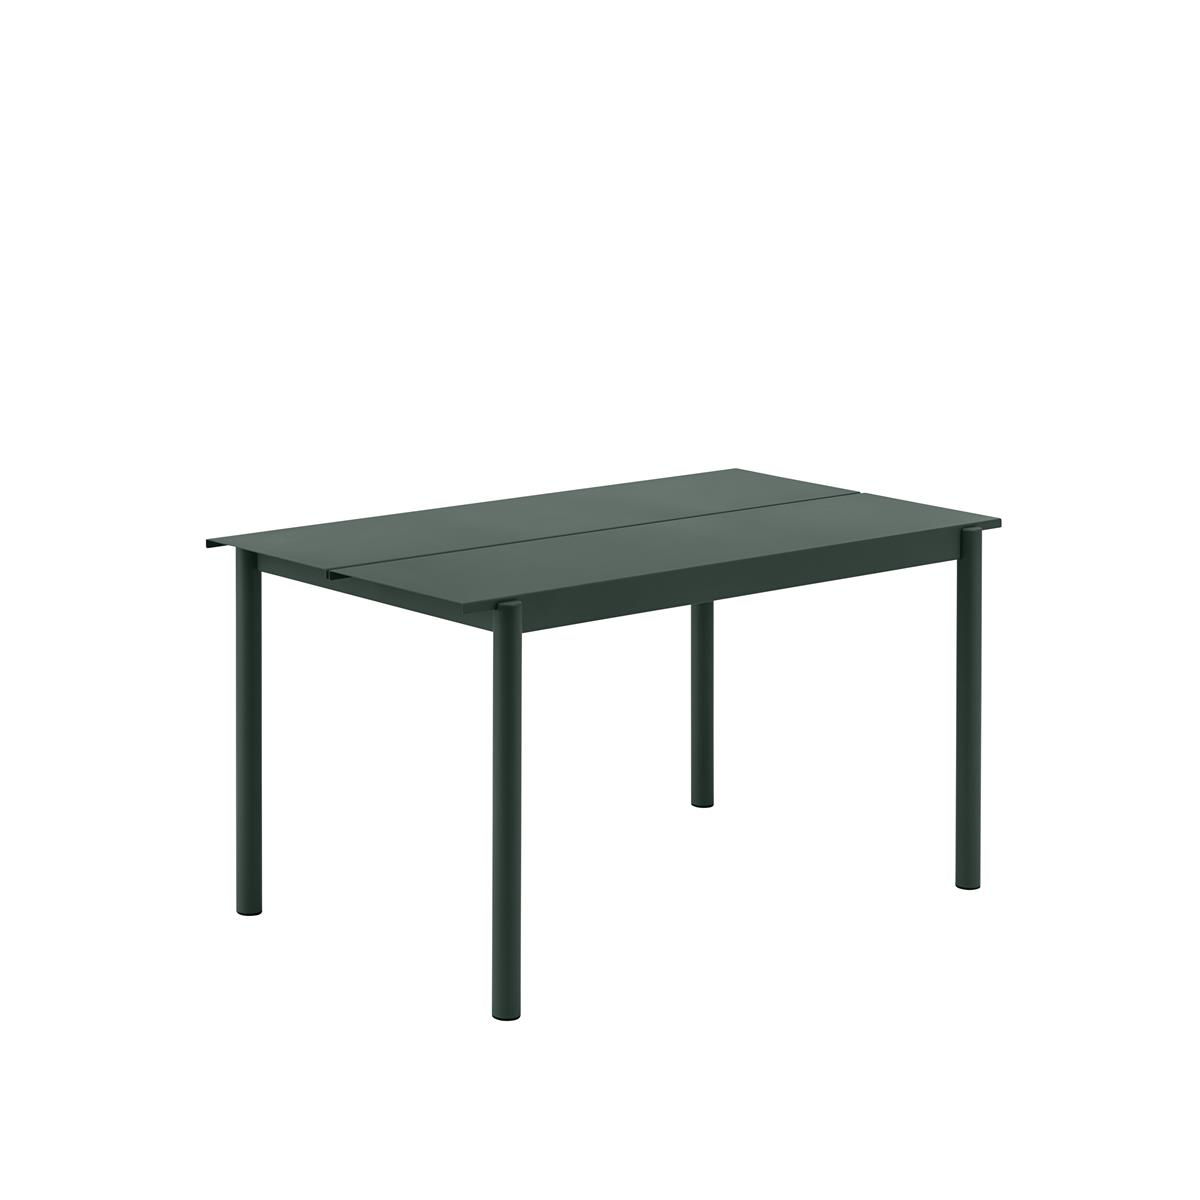 Linear Steel Table 140 x 75 x H73,5 - Dark Green